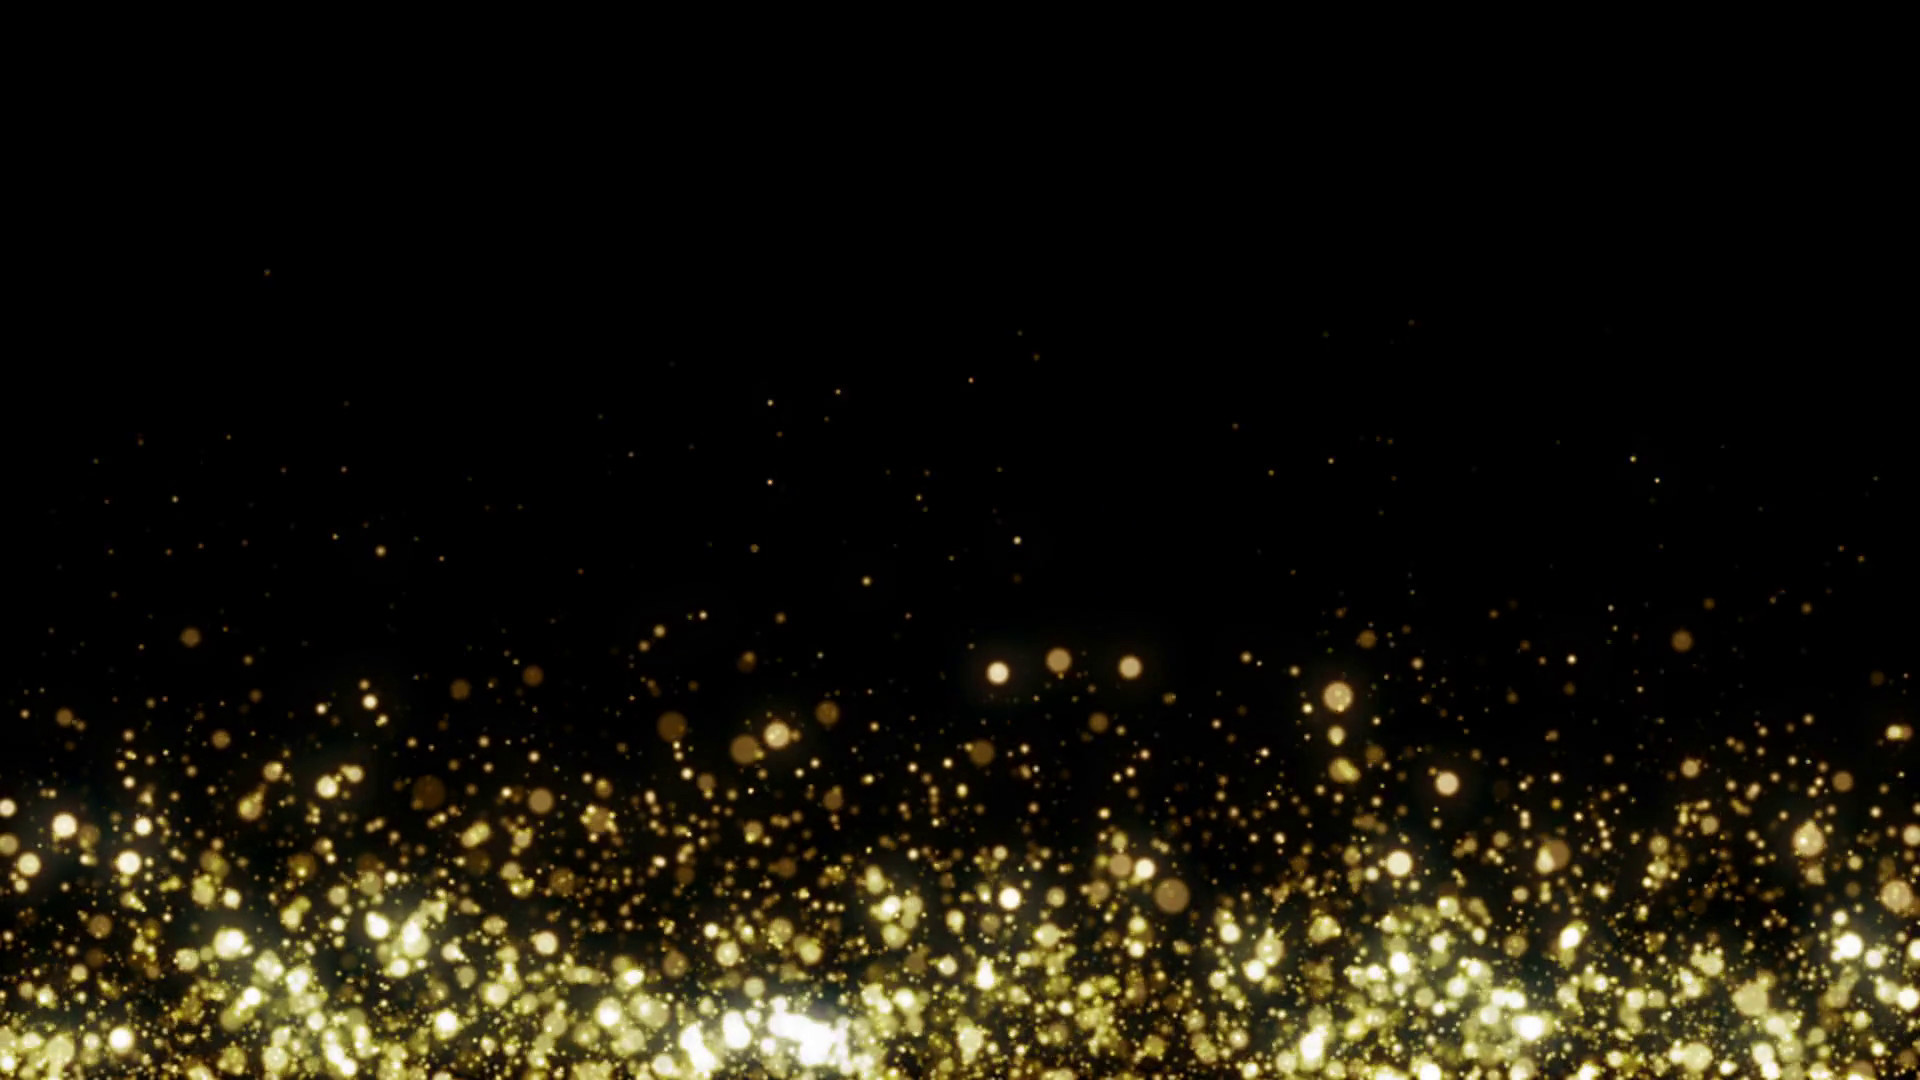 Black And Gold Glitter Wallpaper Hd